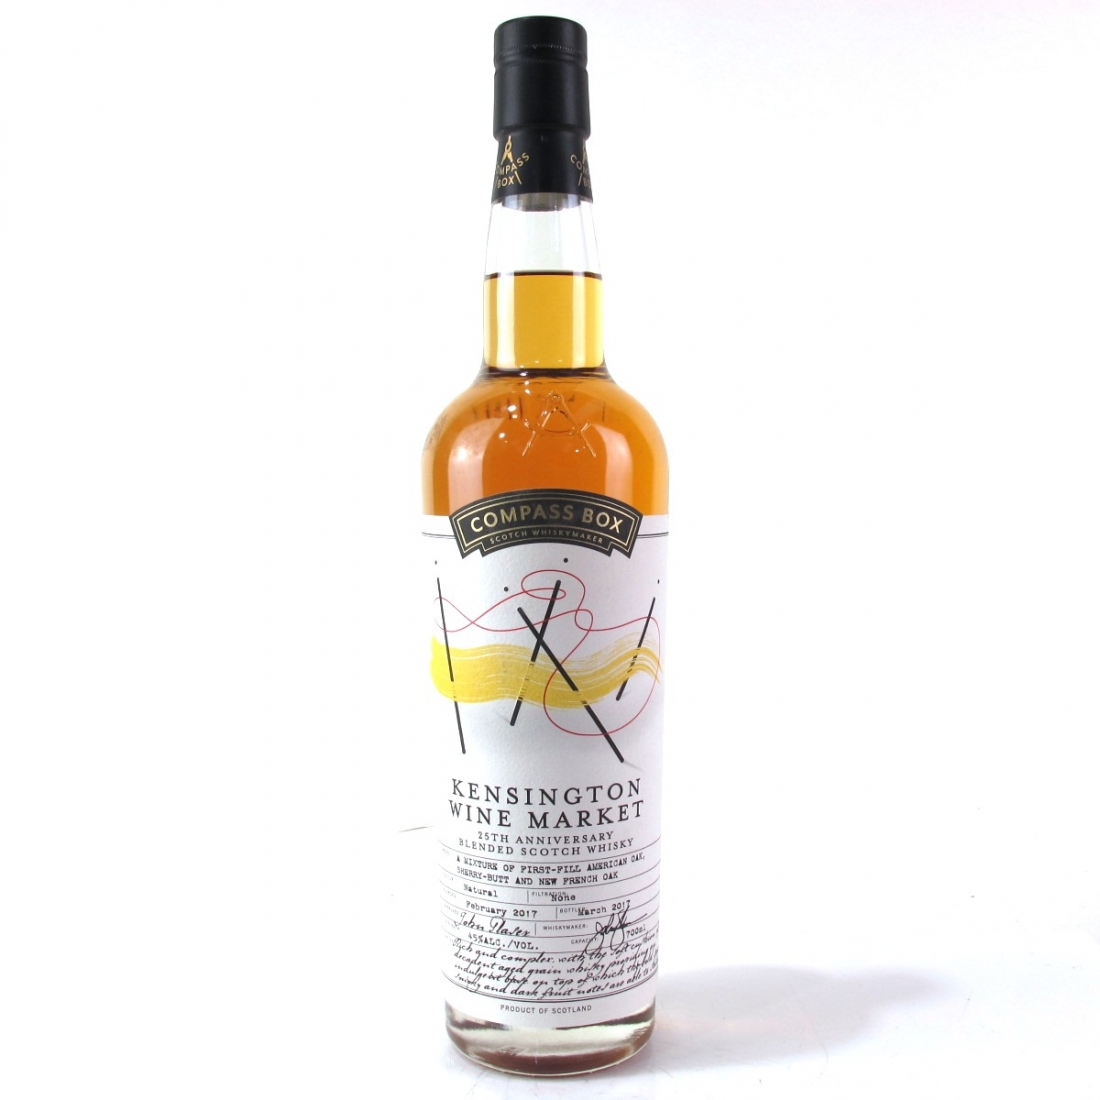 Compass Box Kensington Wine Market 25th Anniversary